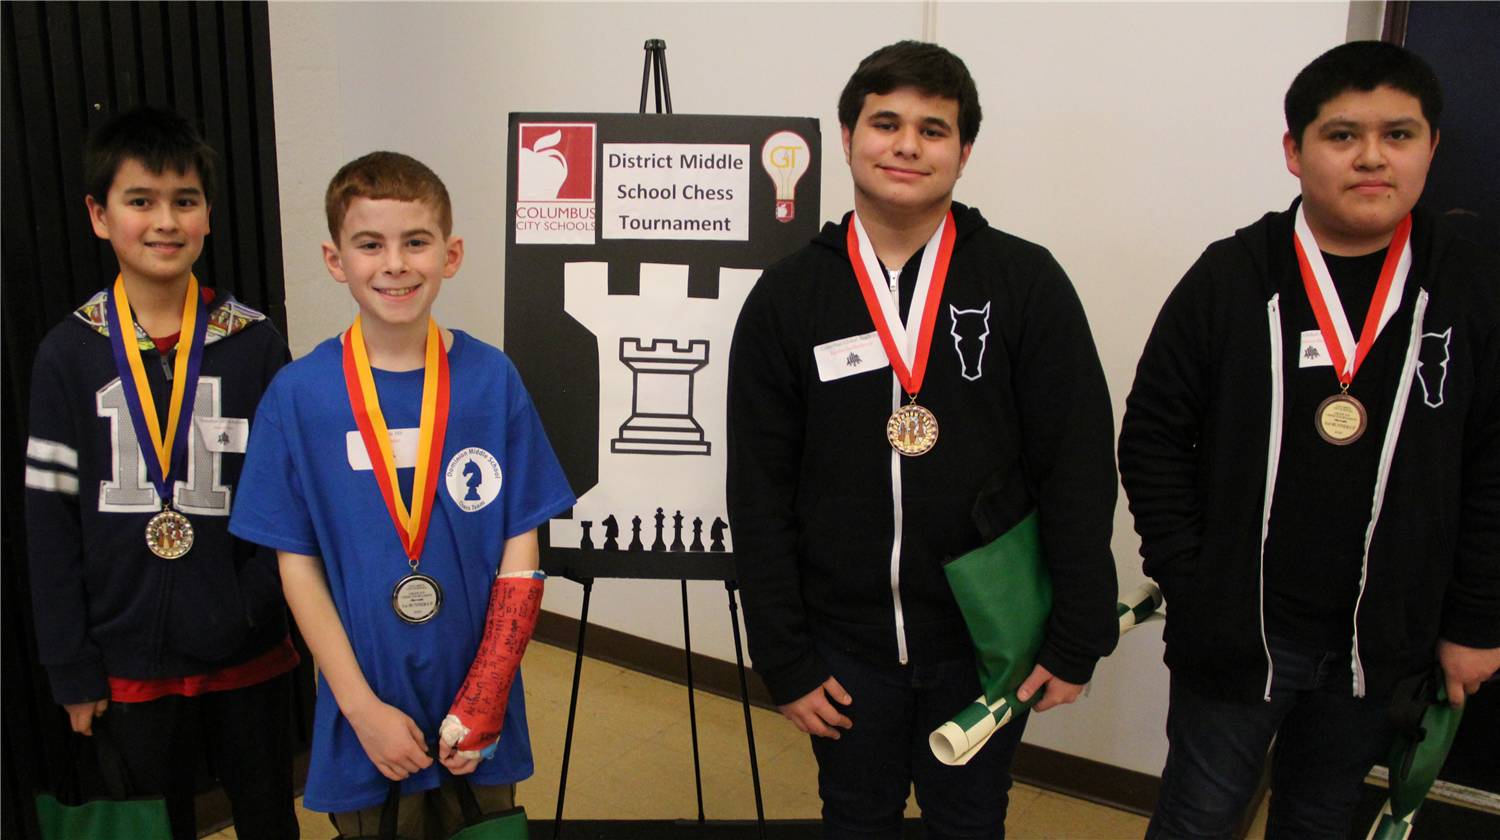 Chess finalists